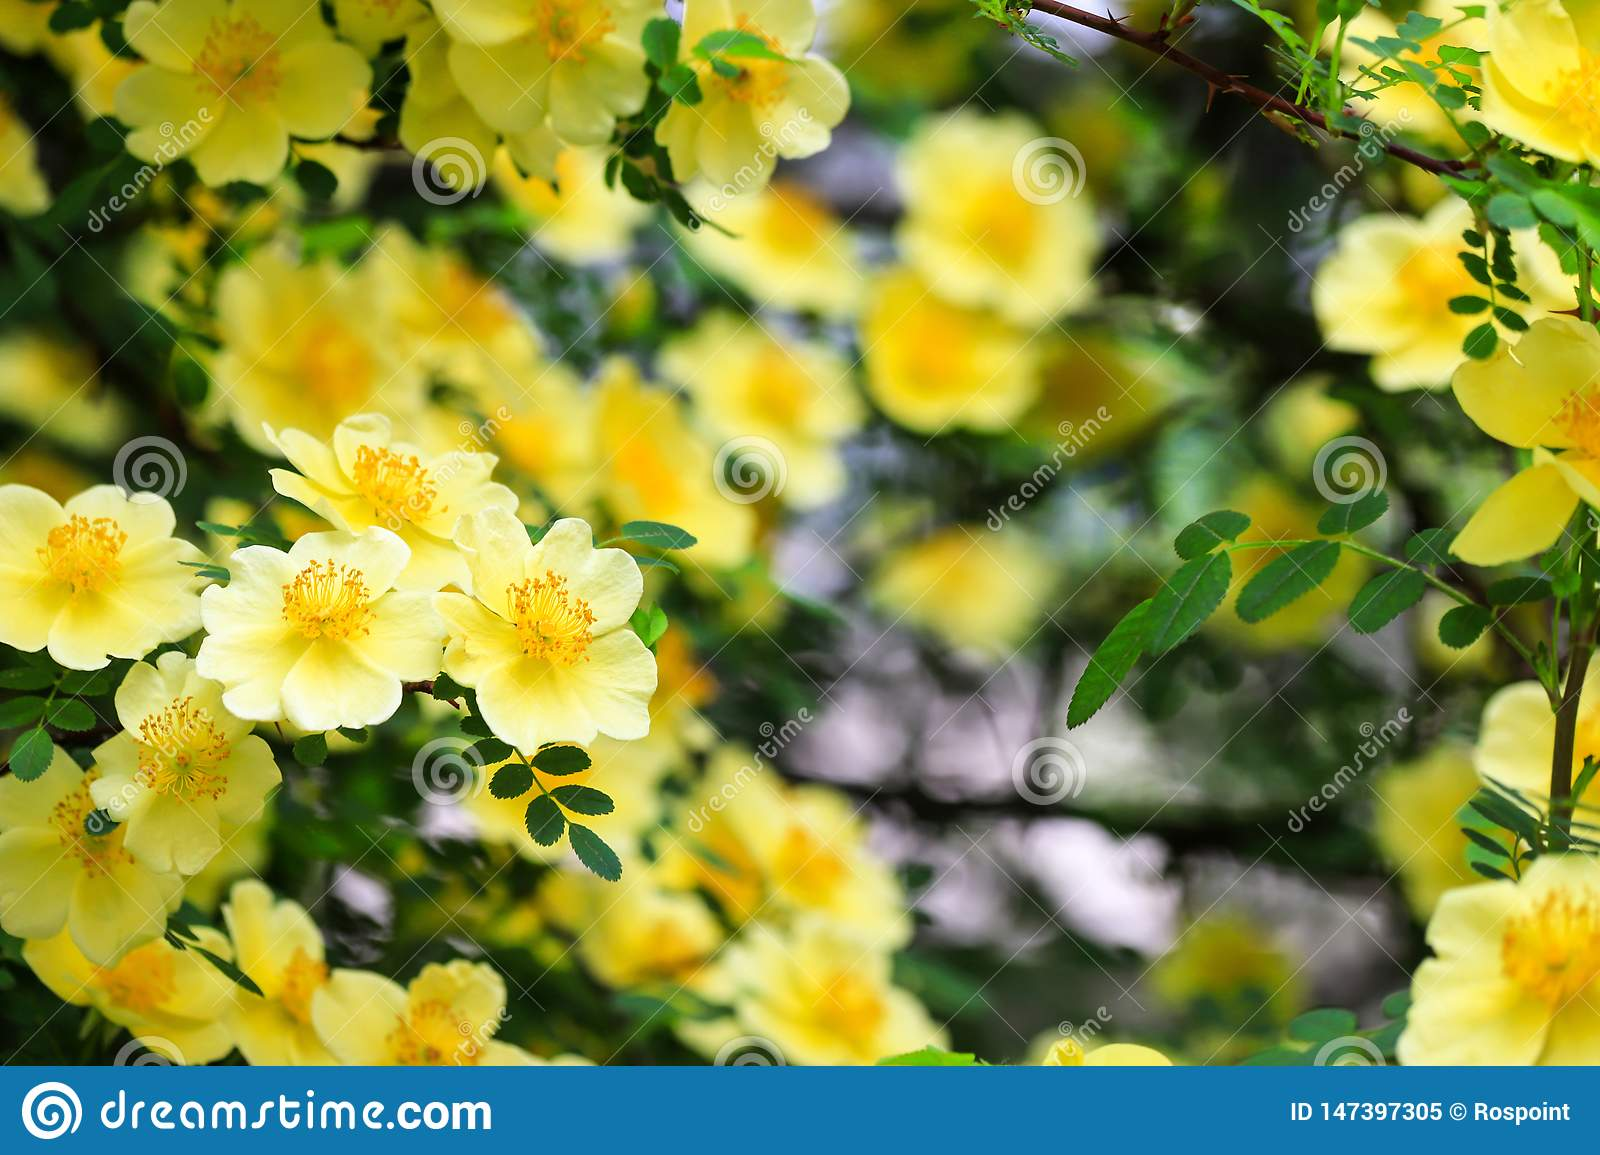 Beautiful yellow flowers bloomed on the branches of the bush in spring. Blooming tree in summer